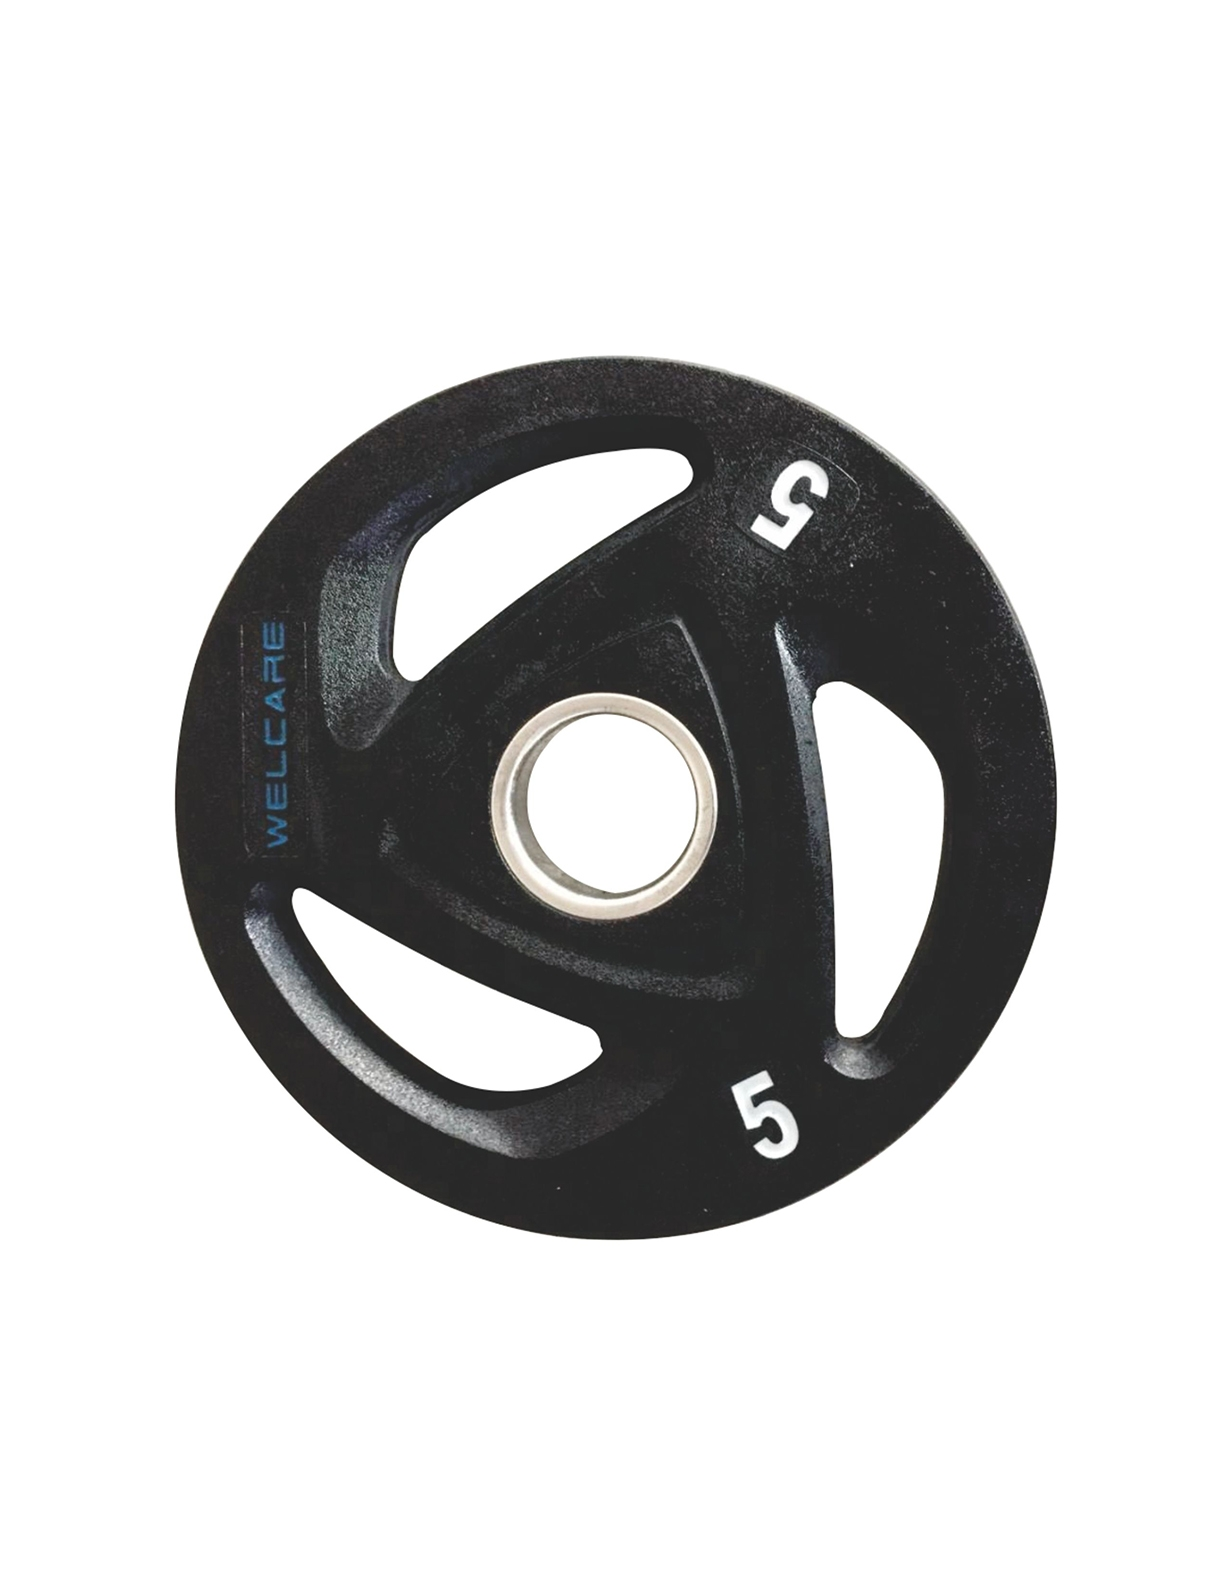 IMPORTED WELCARE WEIGHT PLATES PEV RUBBER